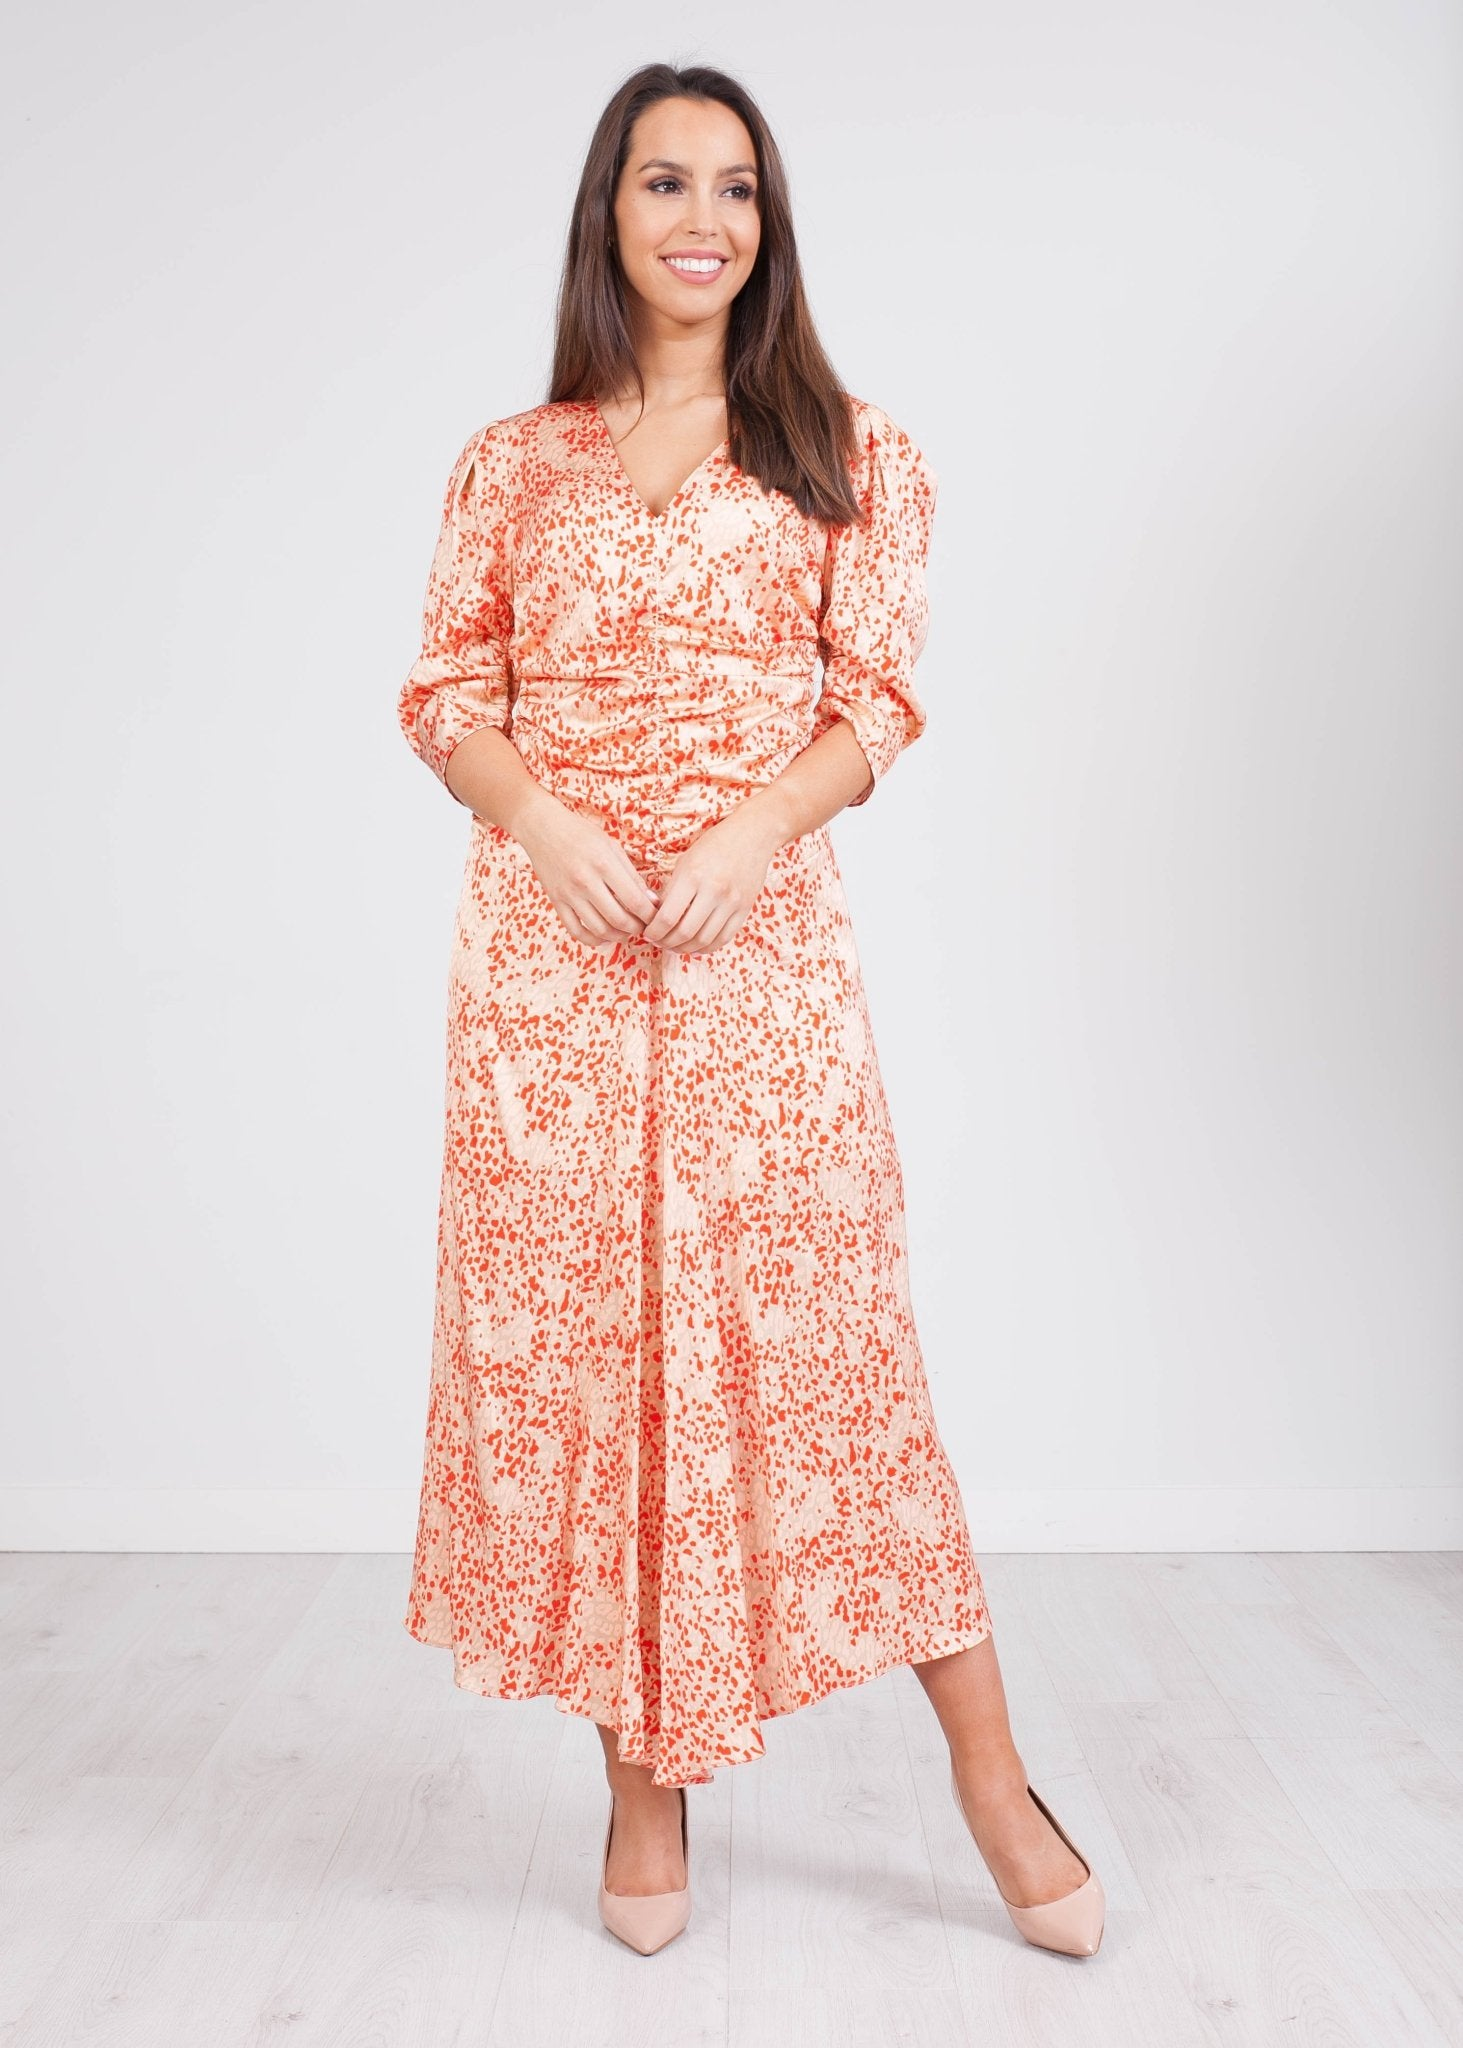 Carla Beige Amelia Print Dress - The Walk in Wardrobe